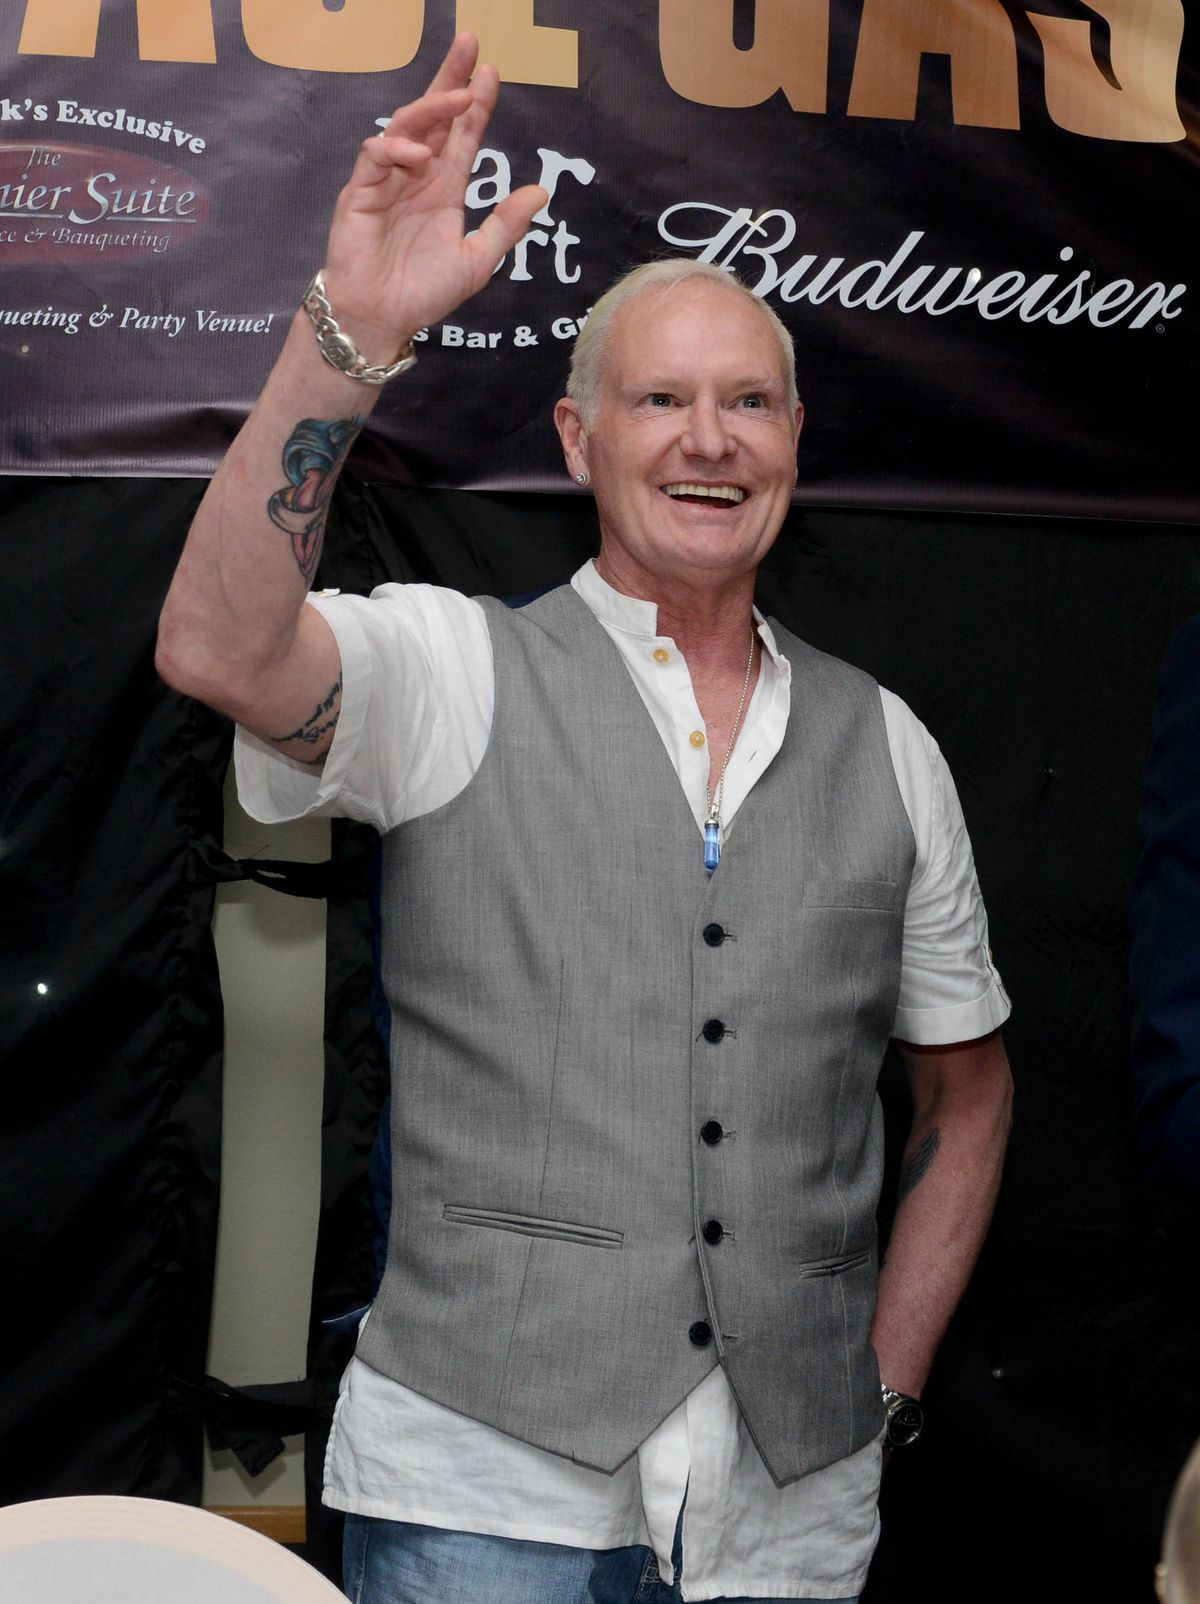 Paul Gascoigne regaled fans with stories from his career